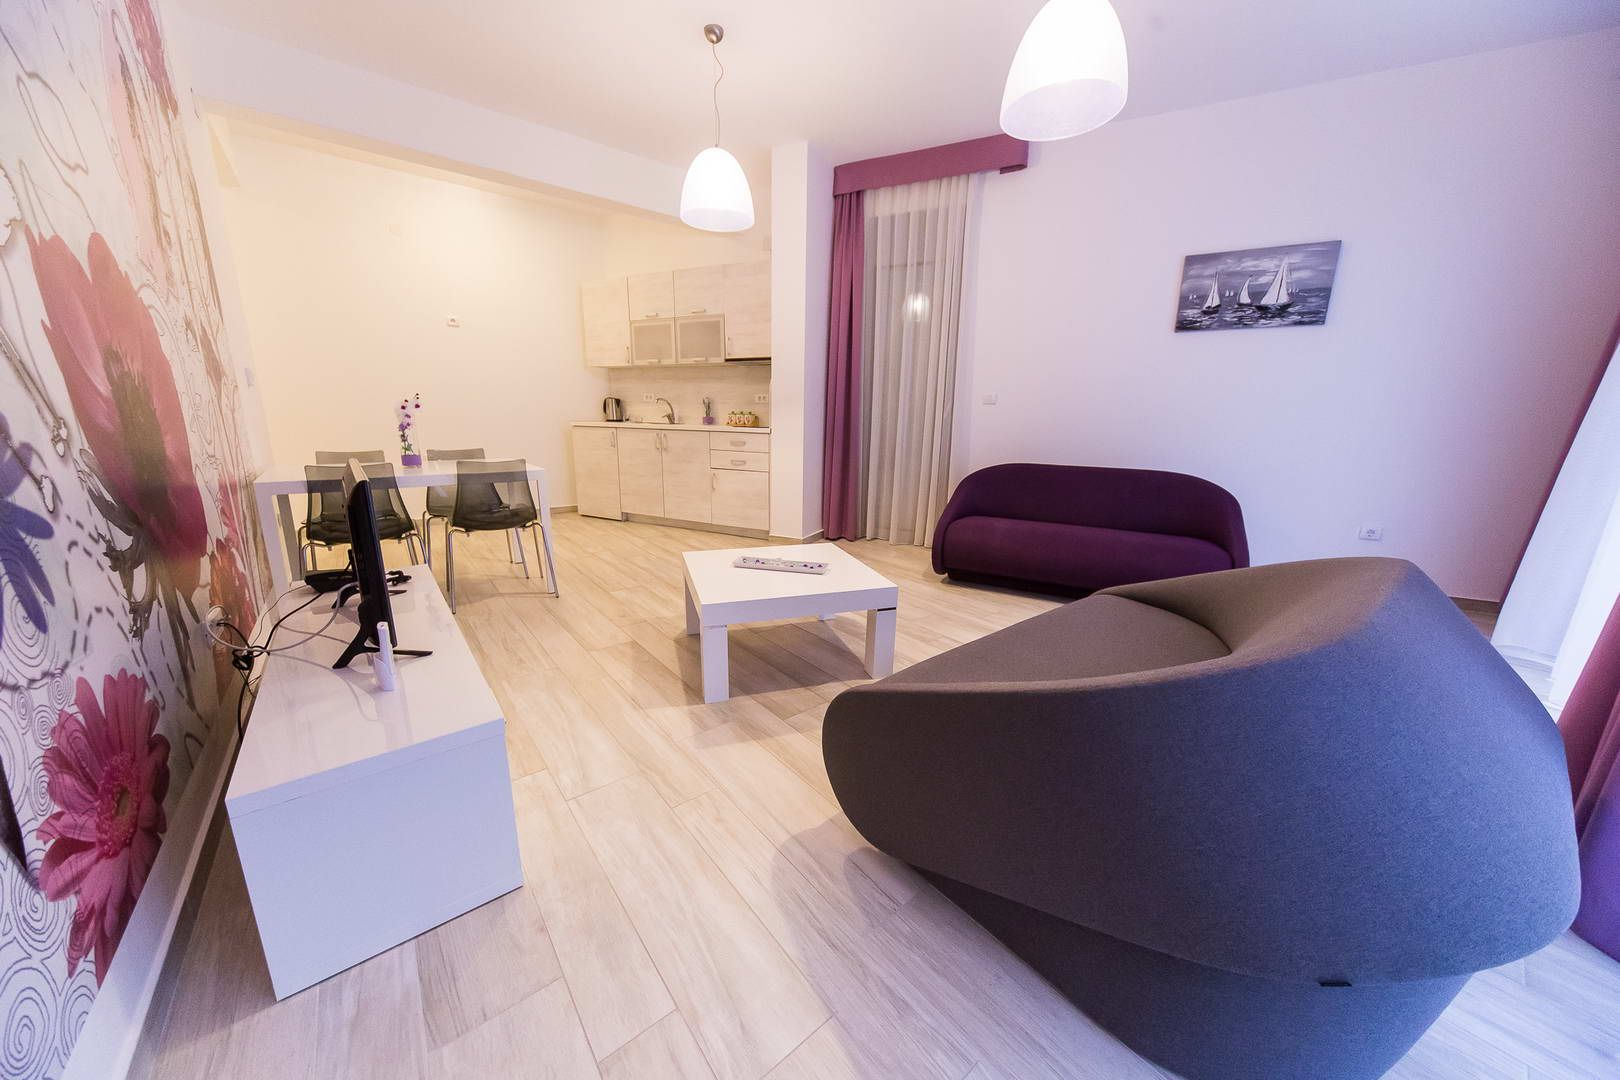 Pin by SEA FORT Aparthotel & Restaura on ONE BEDROOM